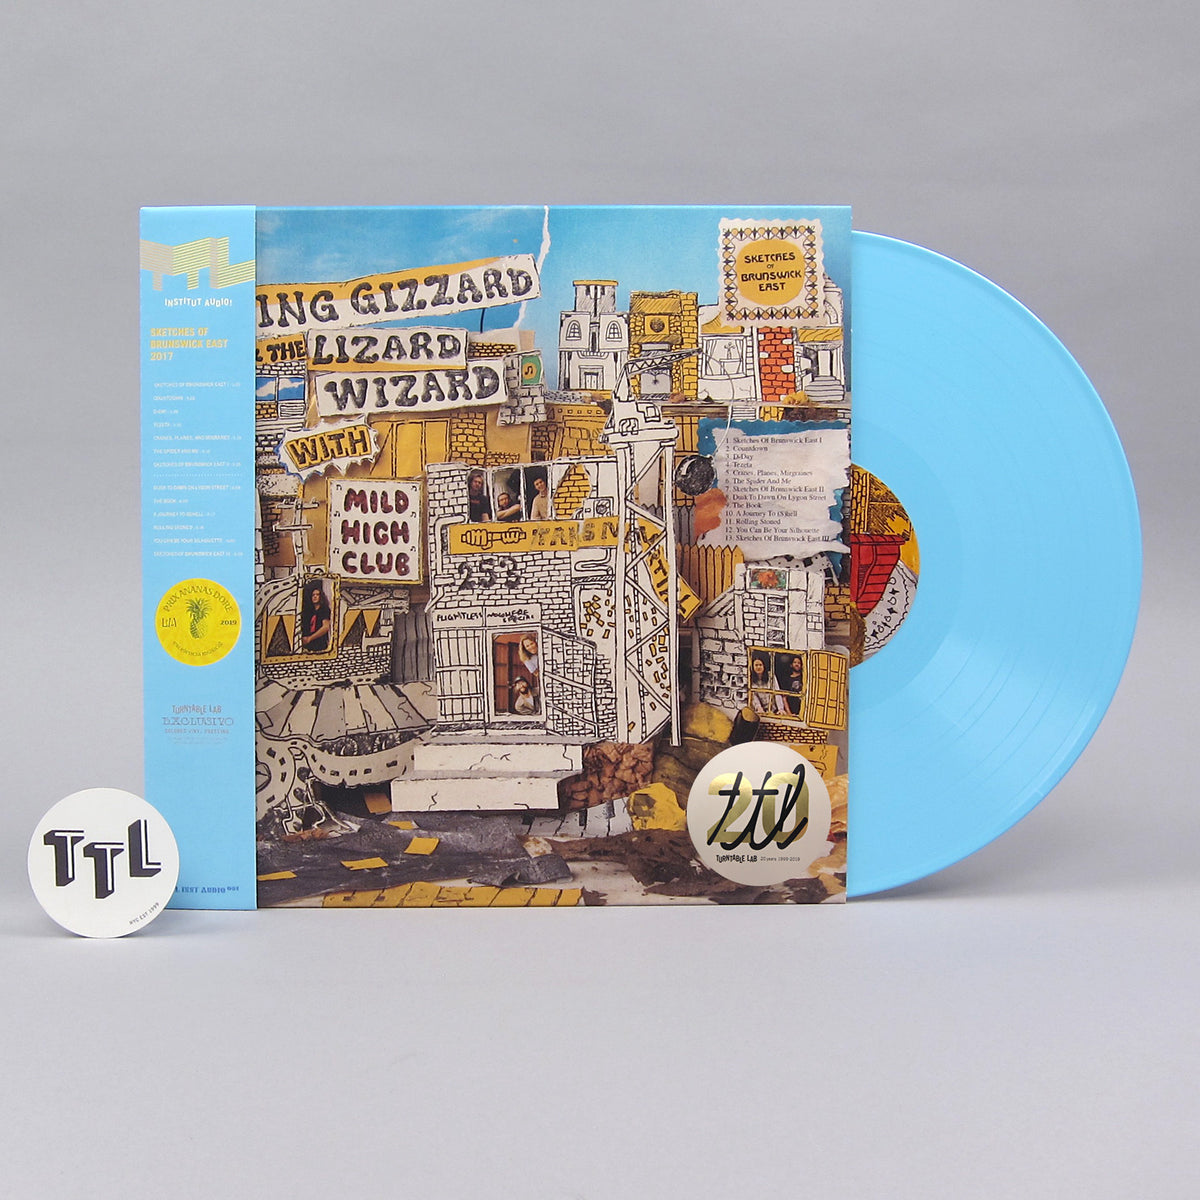 King Gizzard And The Lizard Wizard With Mild High Club: Sketches Of Brunswick East (Colored Vinyl) Vinyl LP - Turntable Lab Exclusive - PRE-ORDER